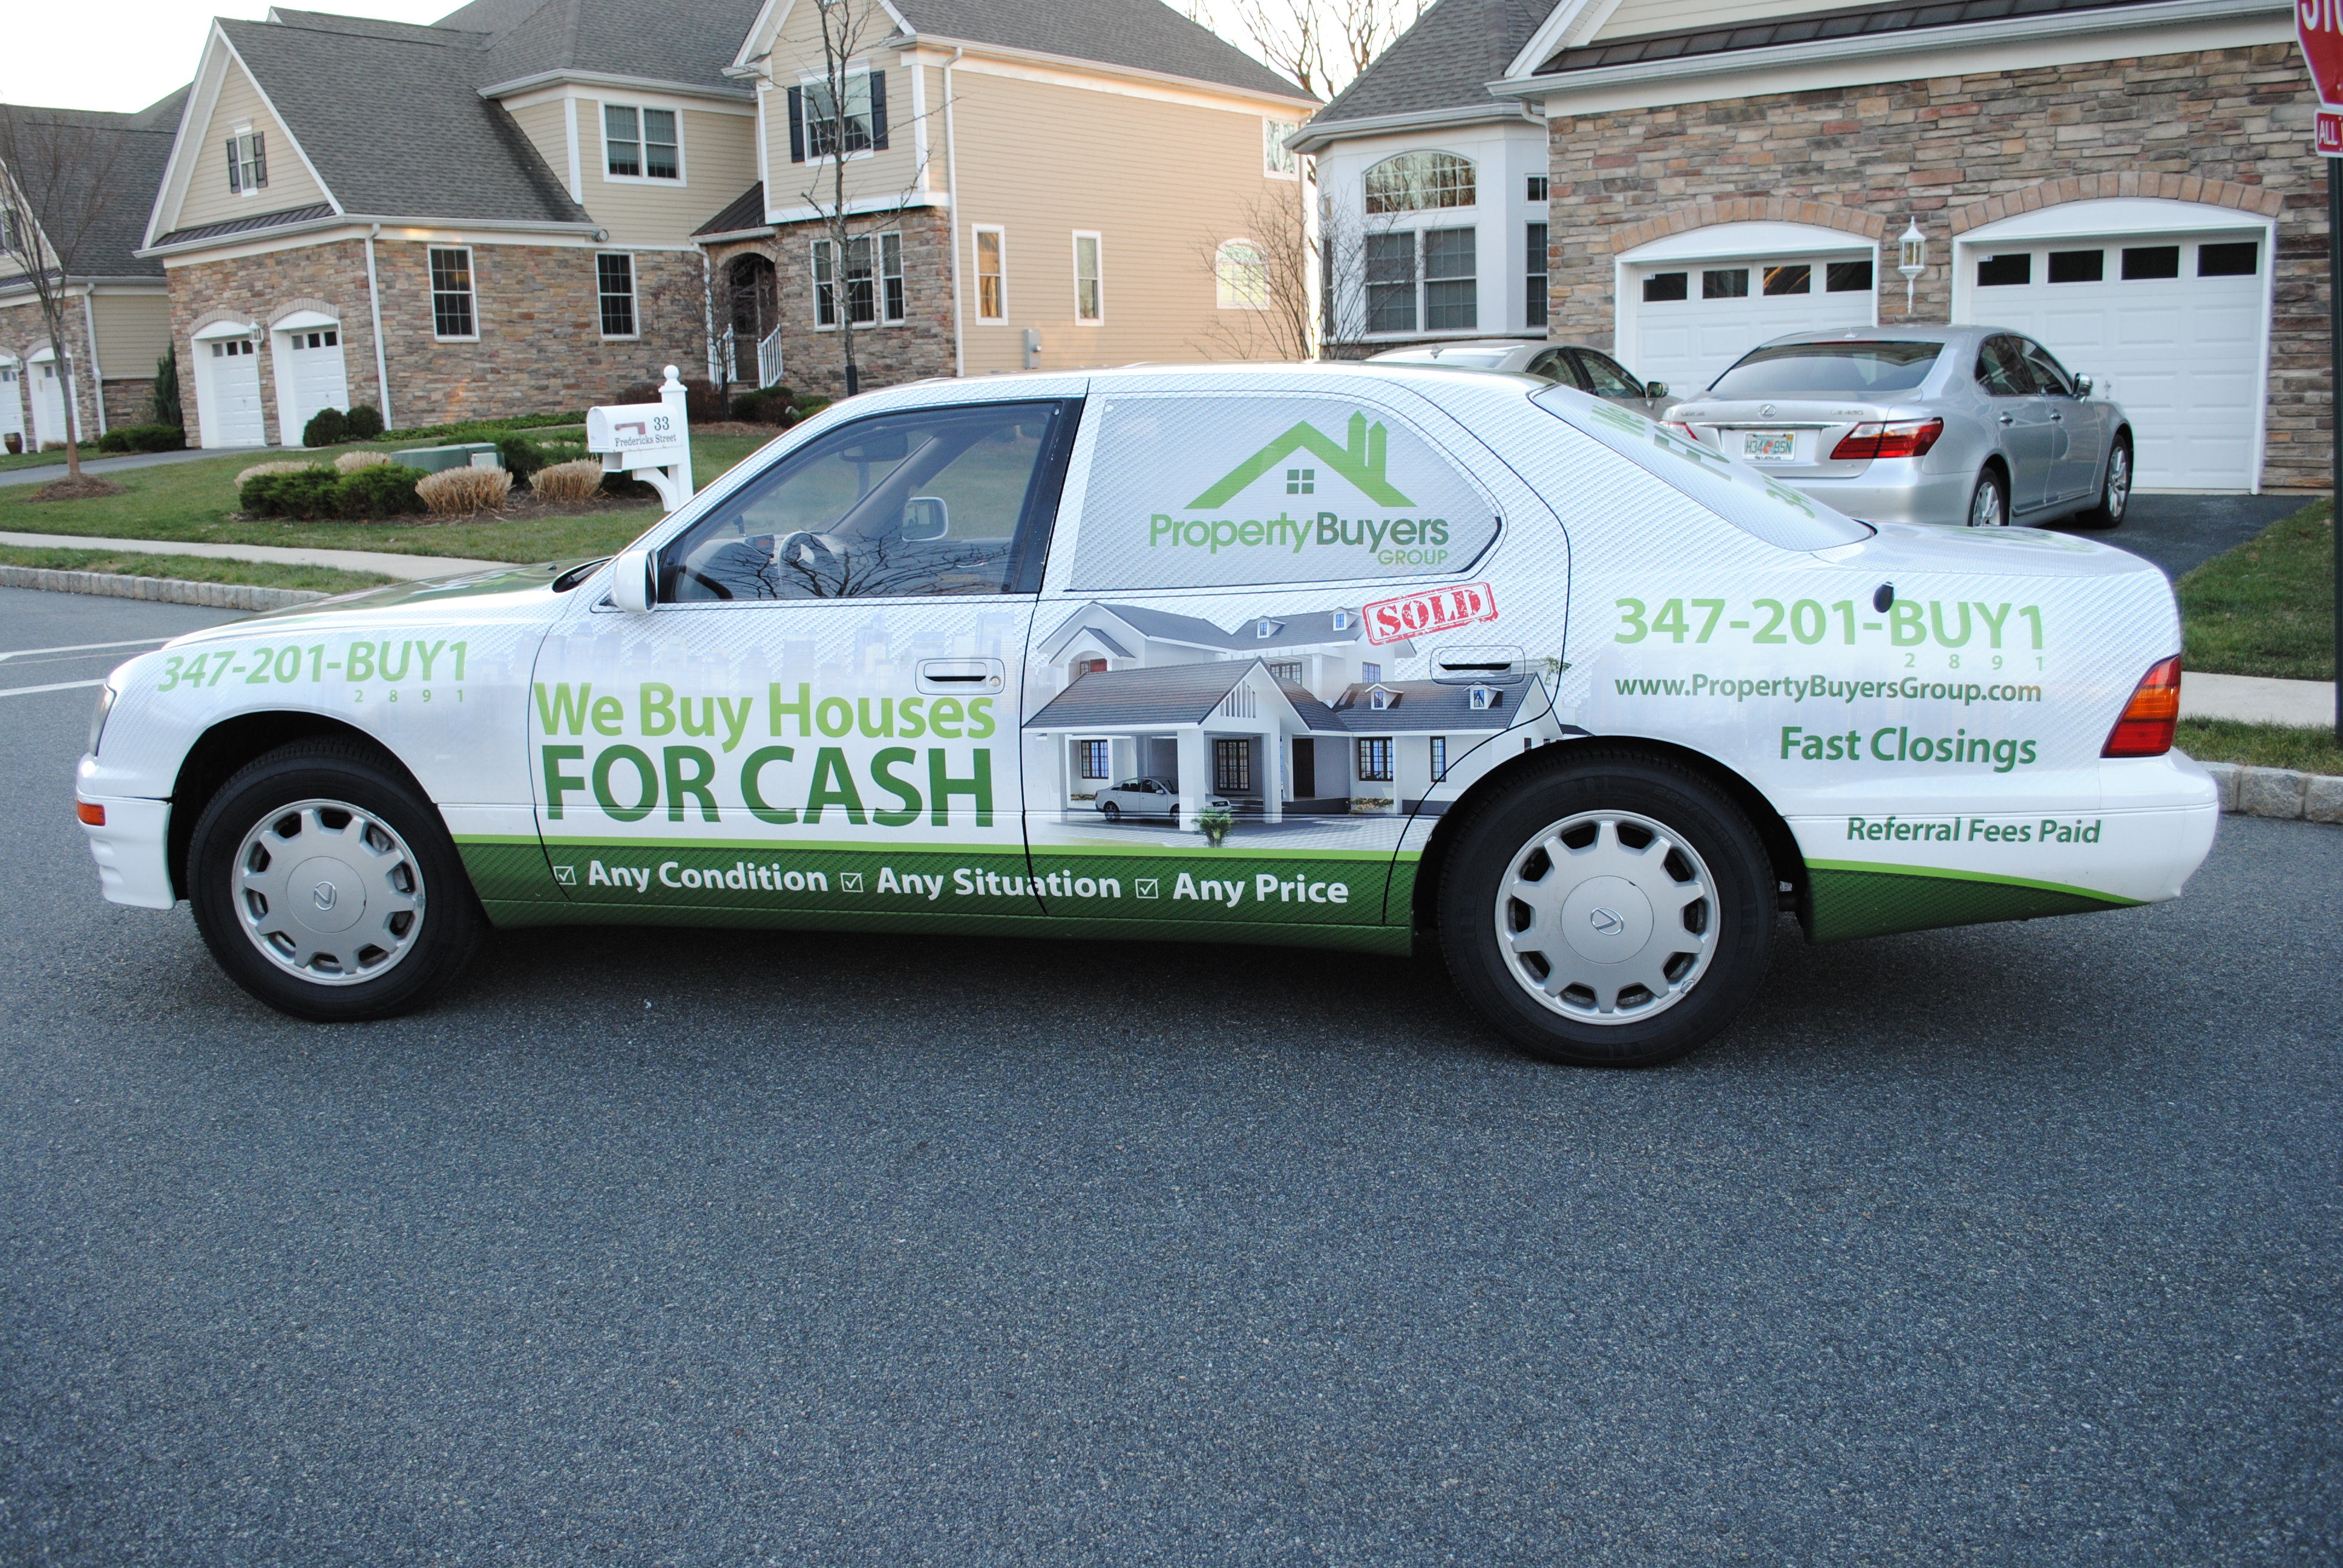 Car Real Estate: Property Buyers Group Now Implementing Car Wraps To Take